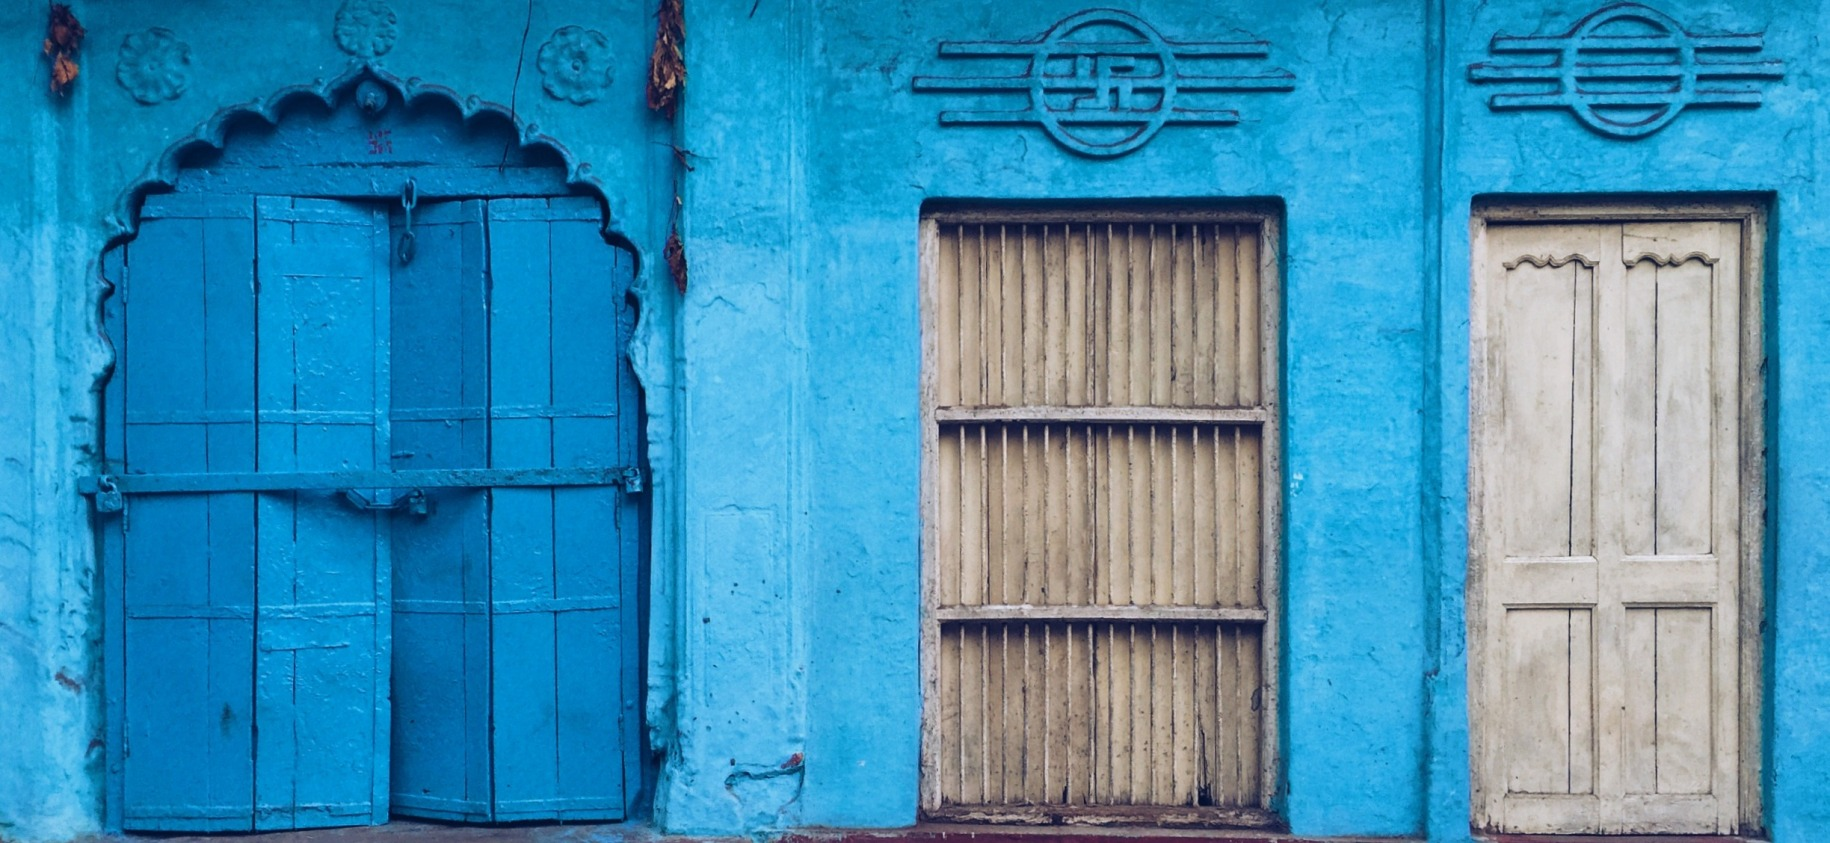 A wash of blue in Varanasi. Photo (and all photos in this post) by Divyakshi Gupta.